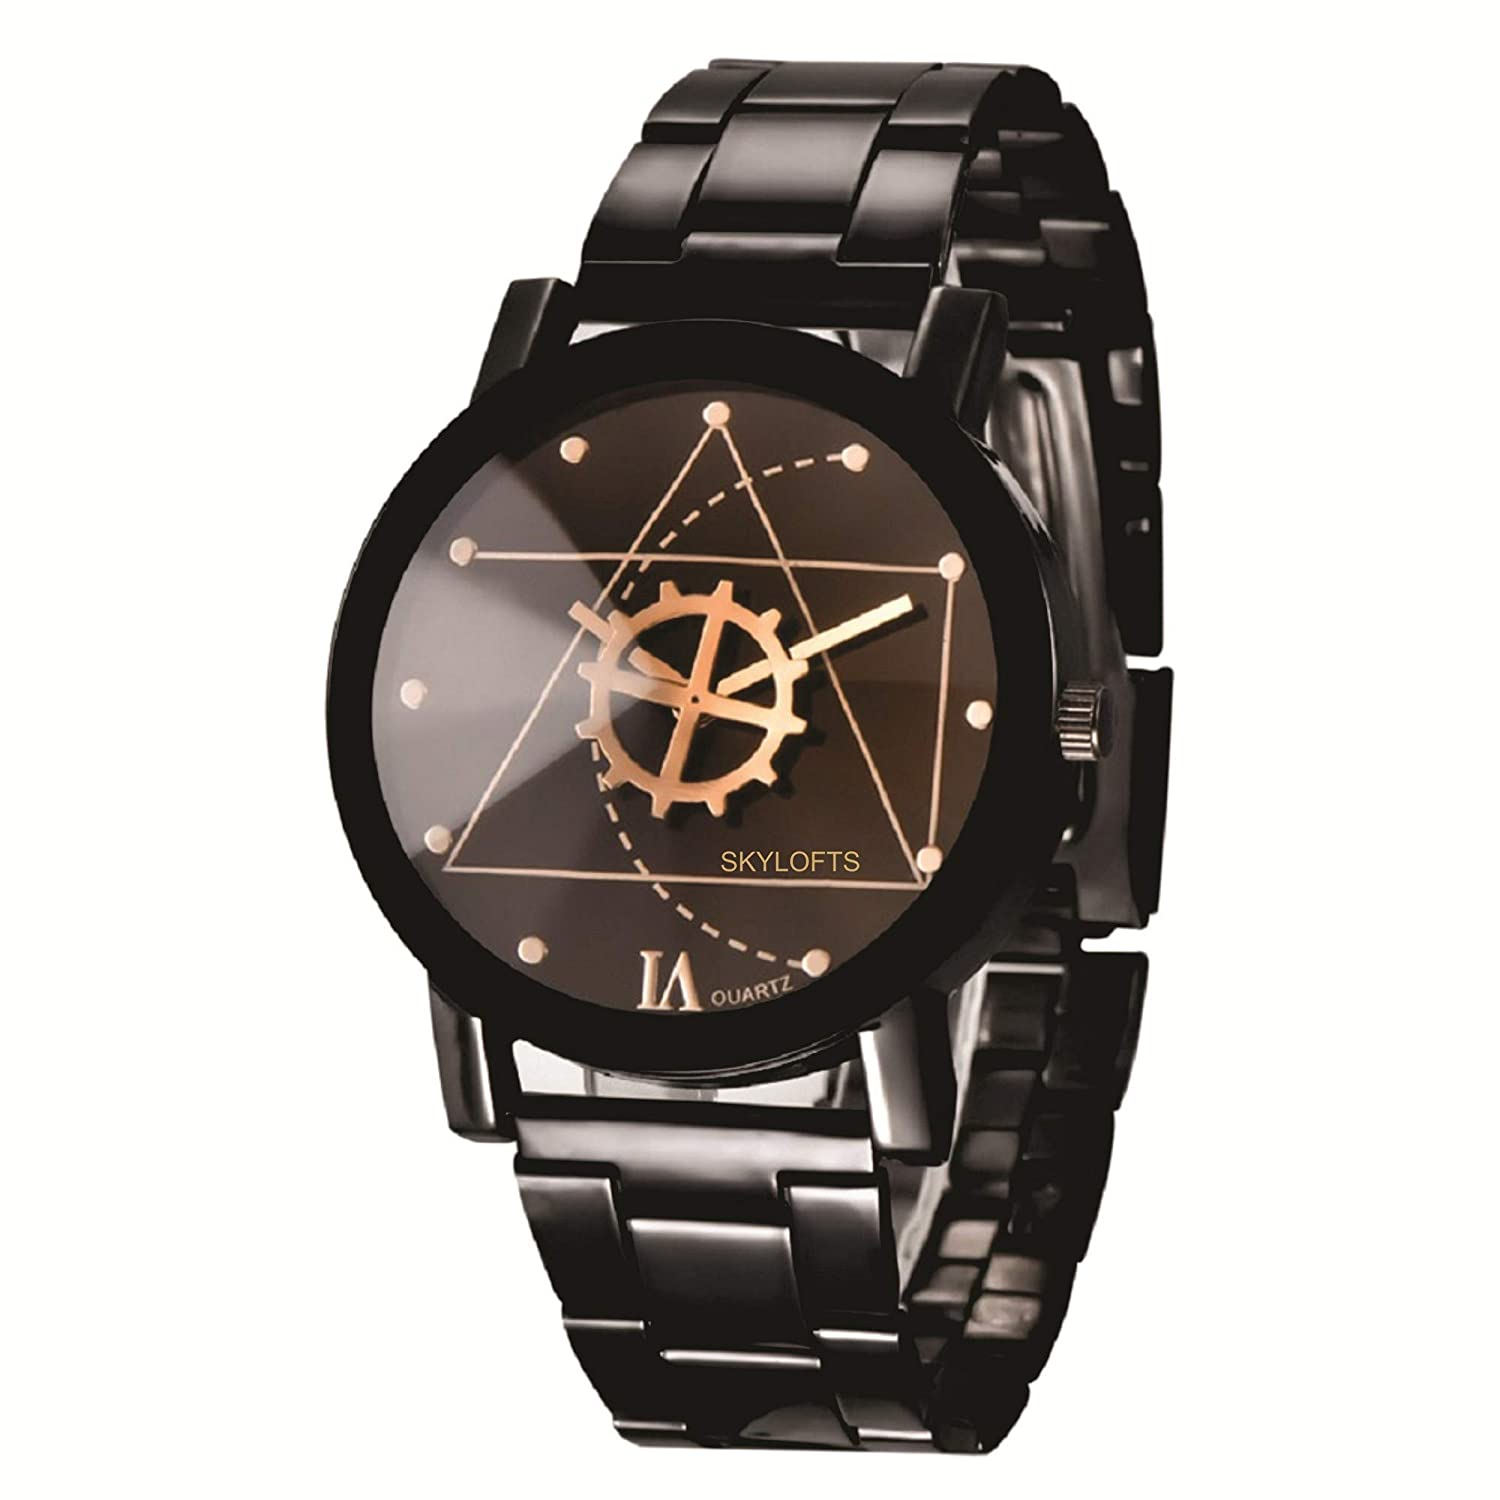 db022f0094 Buy Skyloft Analog Black Dial Stainless Steel Men Watches   Boys Watch  Online at Low Prices in India - Amazon.in